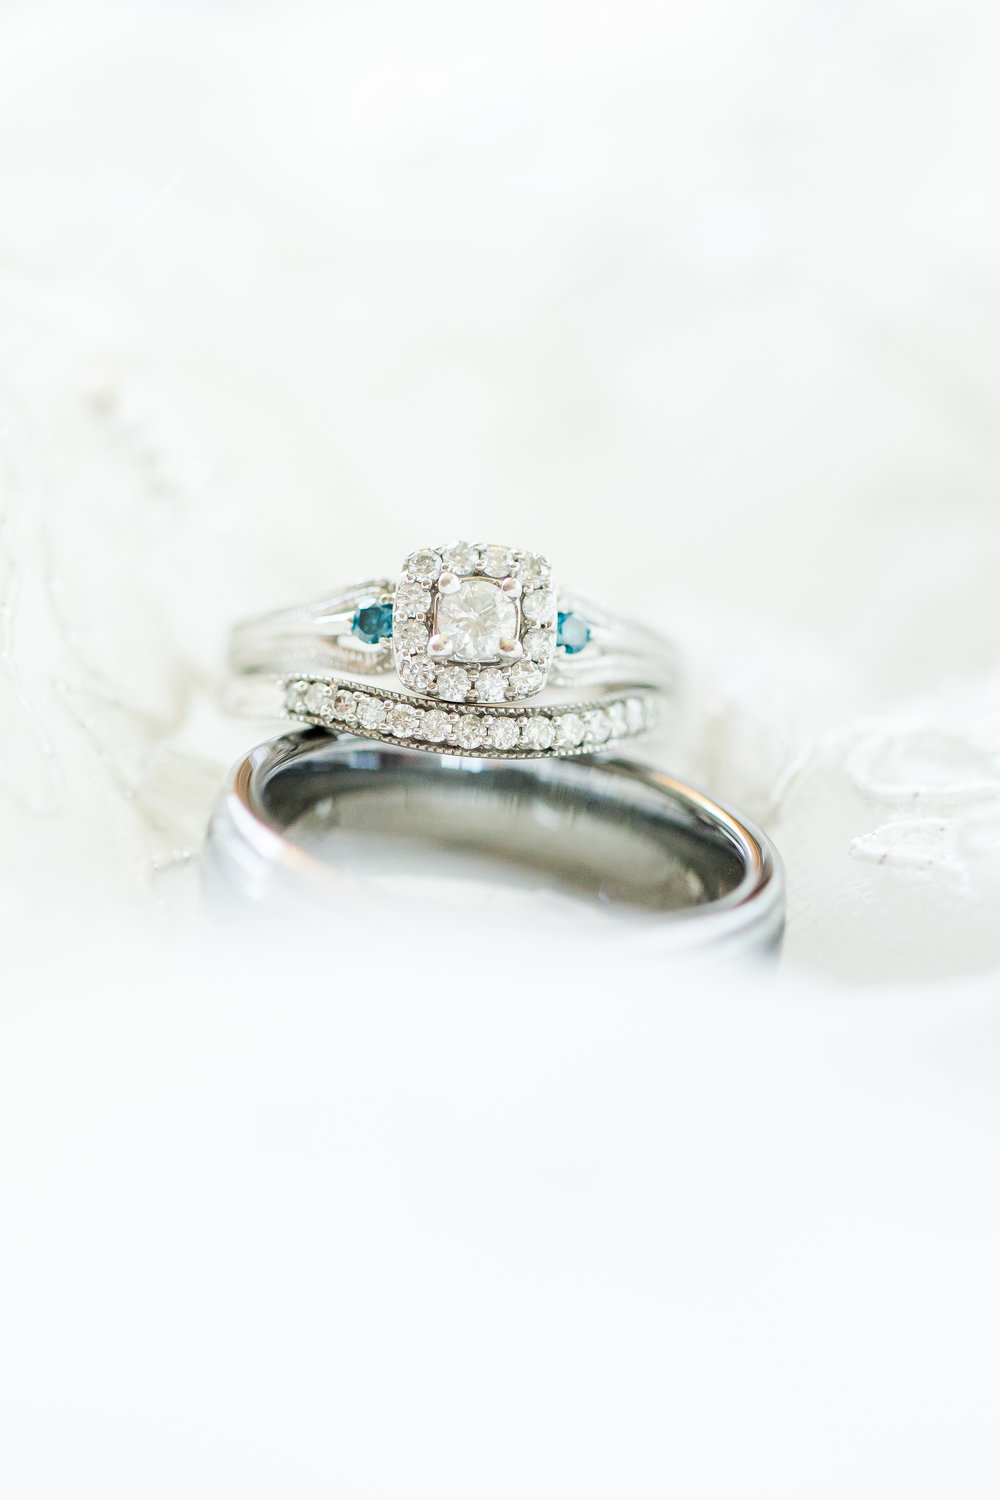 Downing_wedding_RachaelReidPhotography_-25.jpg